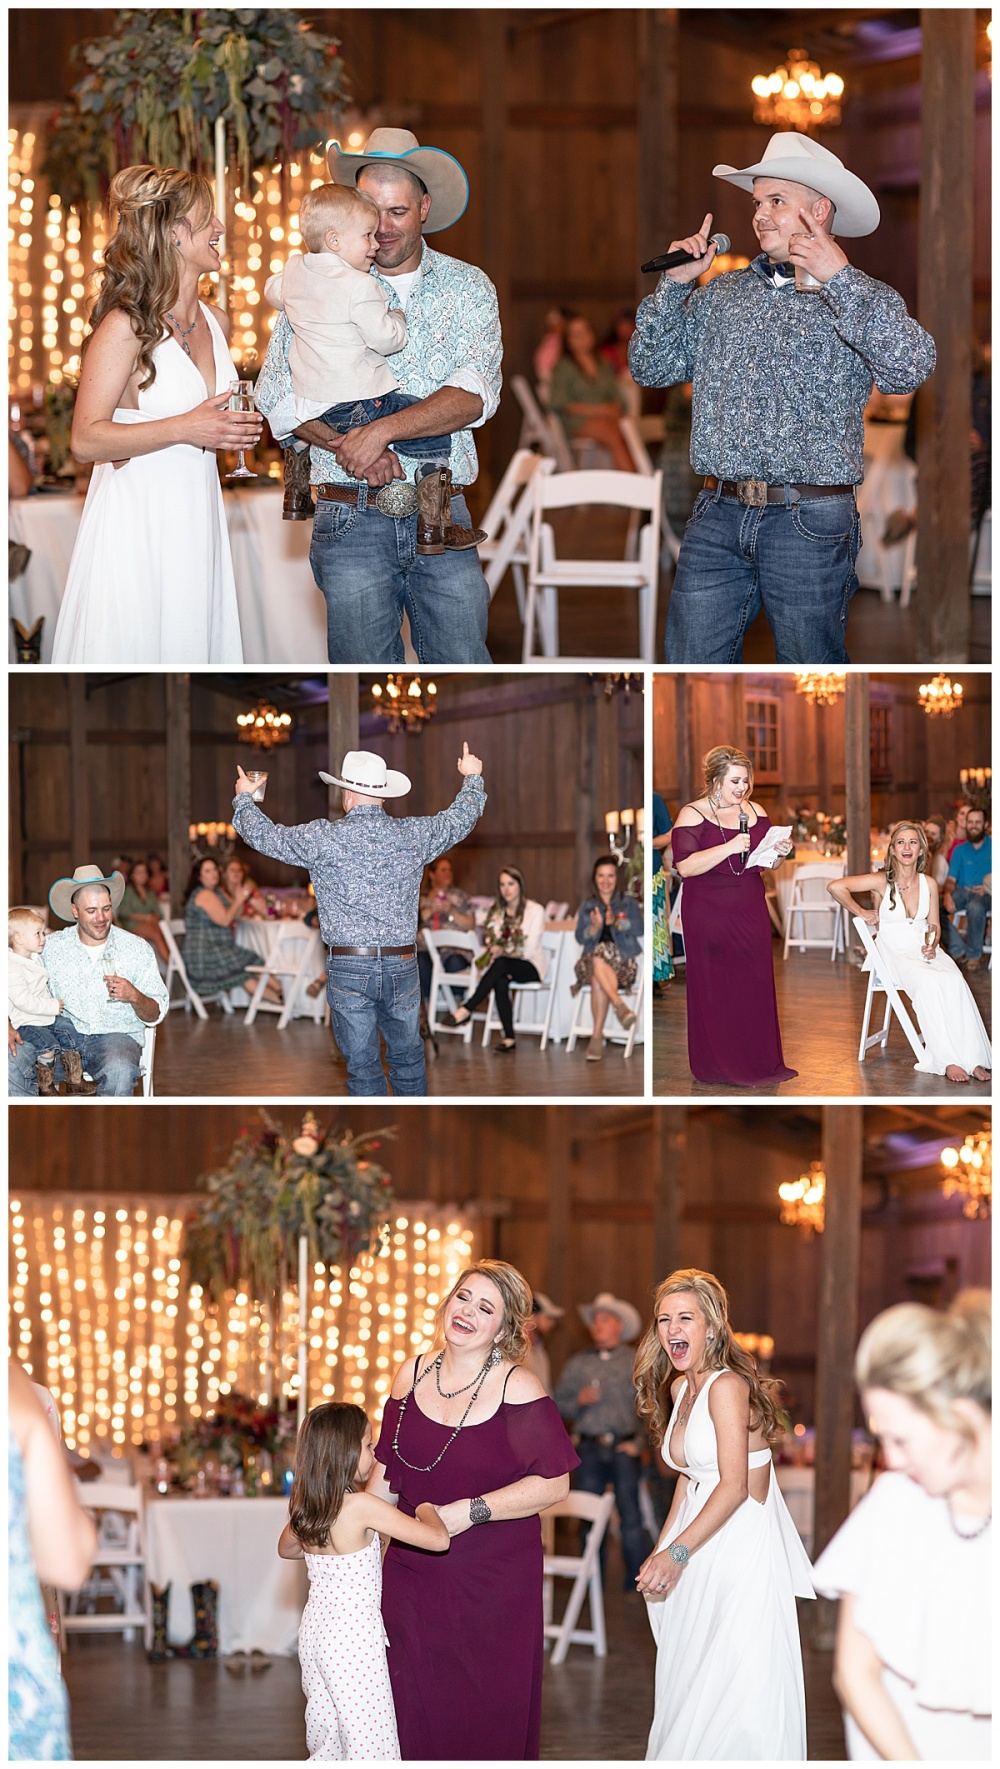 Eagle-Dancer-Ranch-Boerne-Texas-Wedding-Party-Barn-Carly-Barton-Photography_0067.jpg